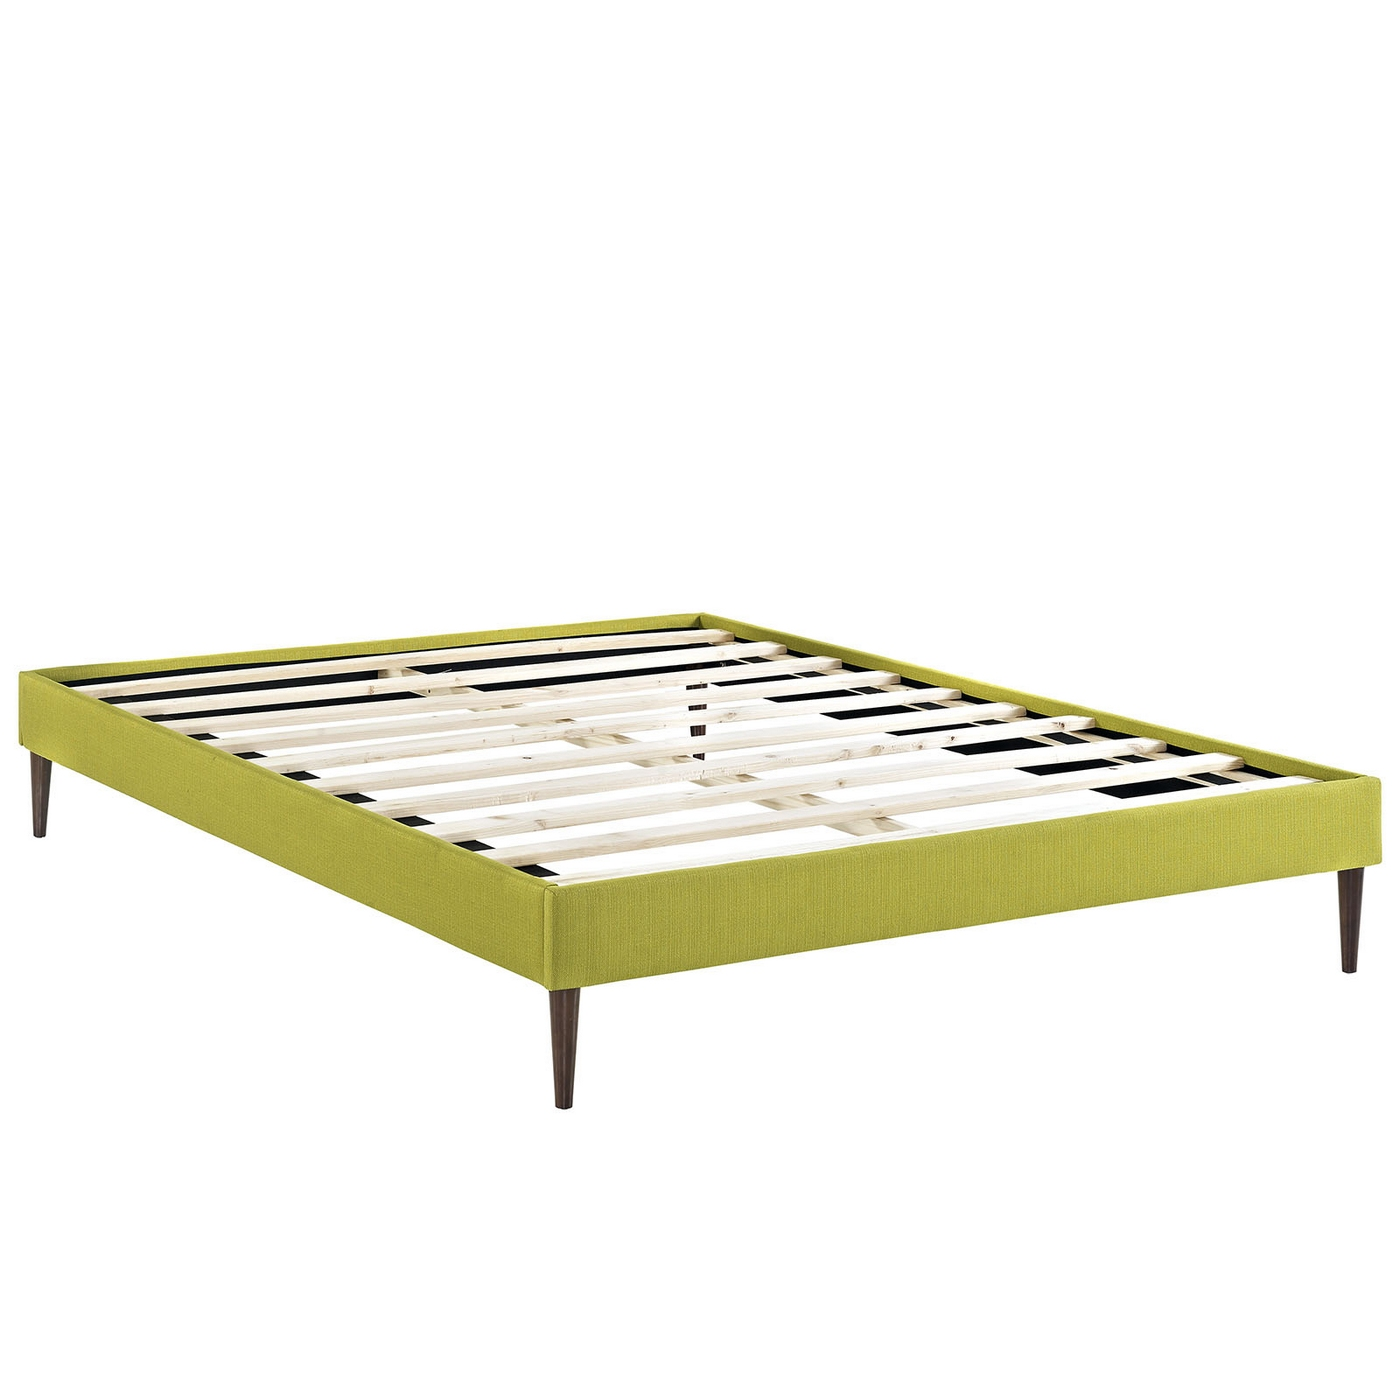 Sherry Upholstered Fabric Full Platform Bed Frame Wheatgrass